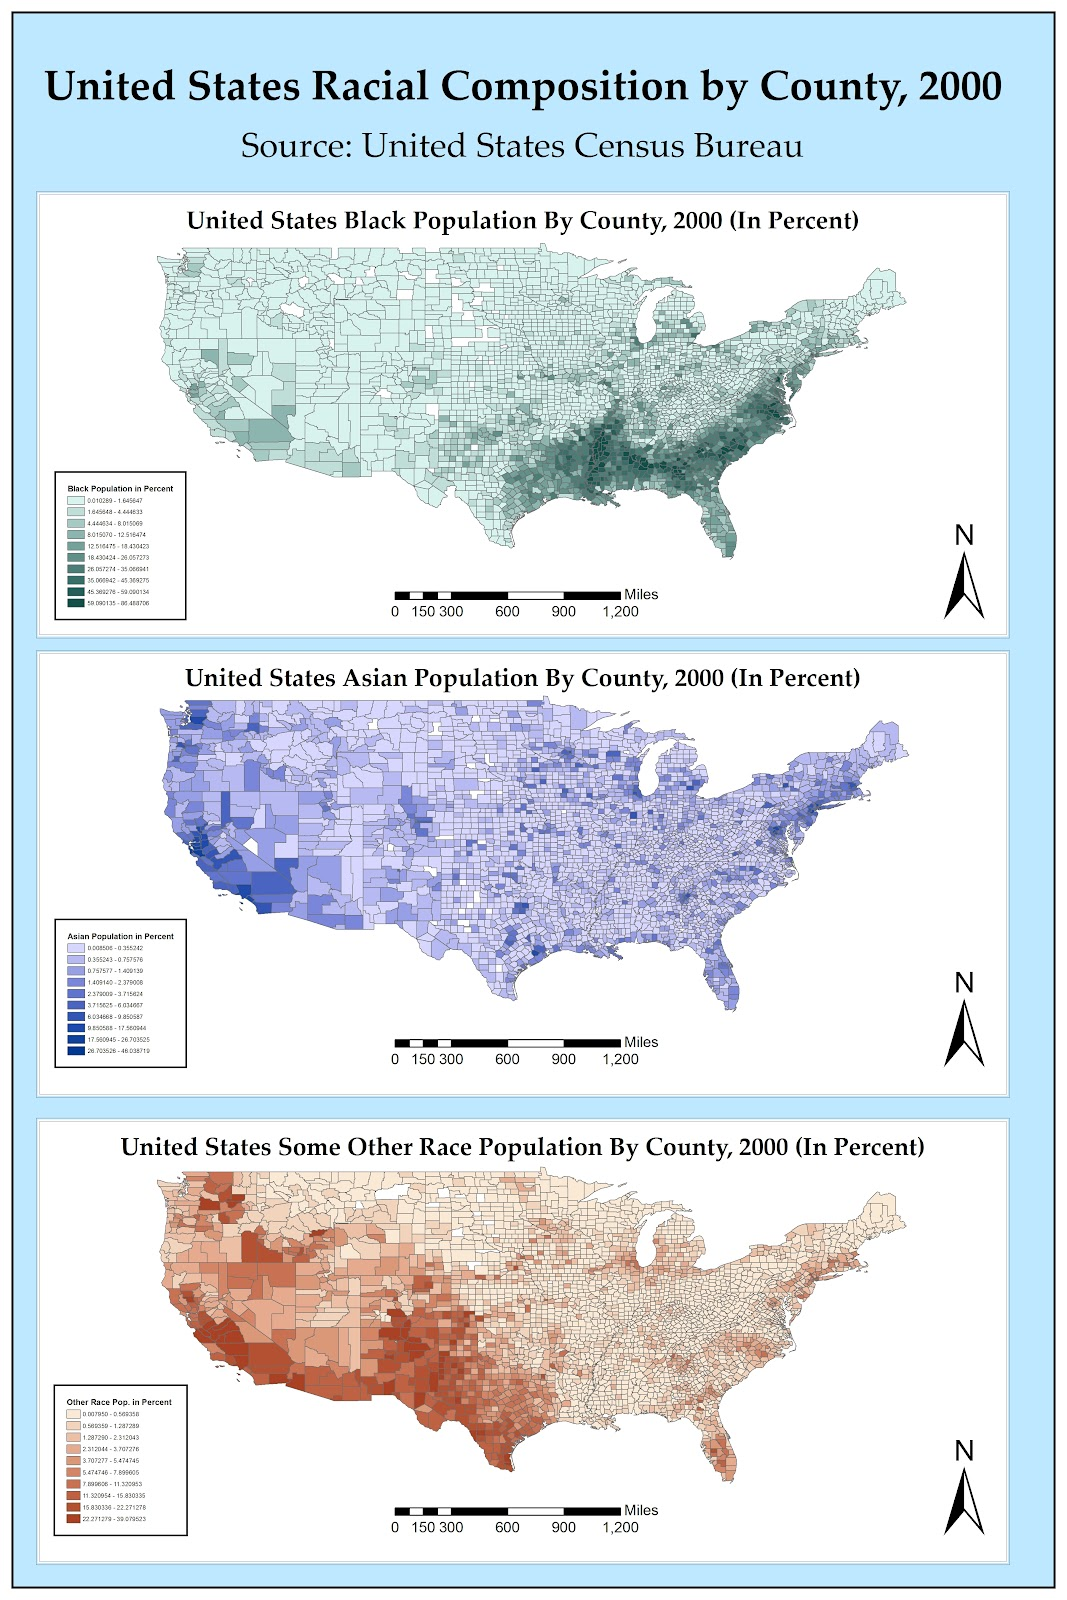 the first map of the census 2000 racial composition by county series presents the percentage of blacks by county in the continental united states